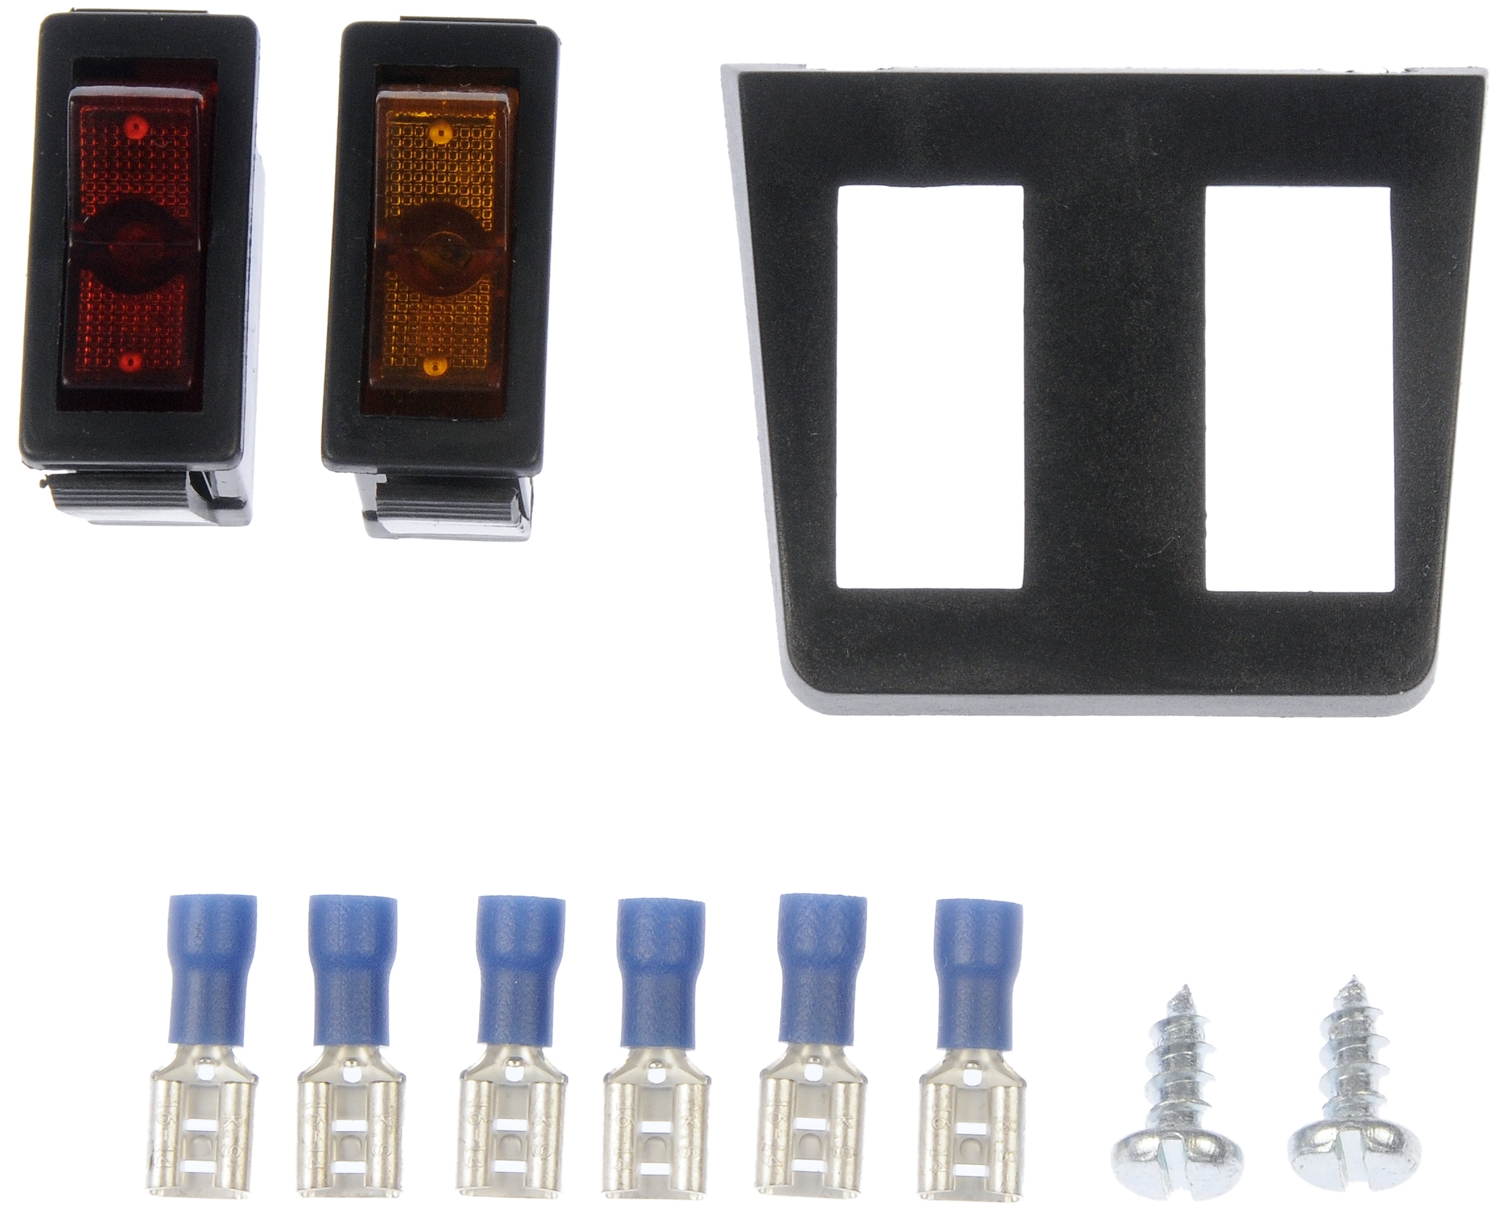 small resolution of dorman oe solutions 86921 multi purpose switch conduct tite r 12 volt 20 amp max rocker rectangular non lighted red amber without safety cover